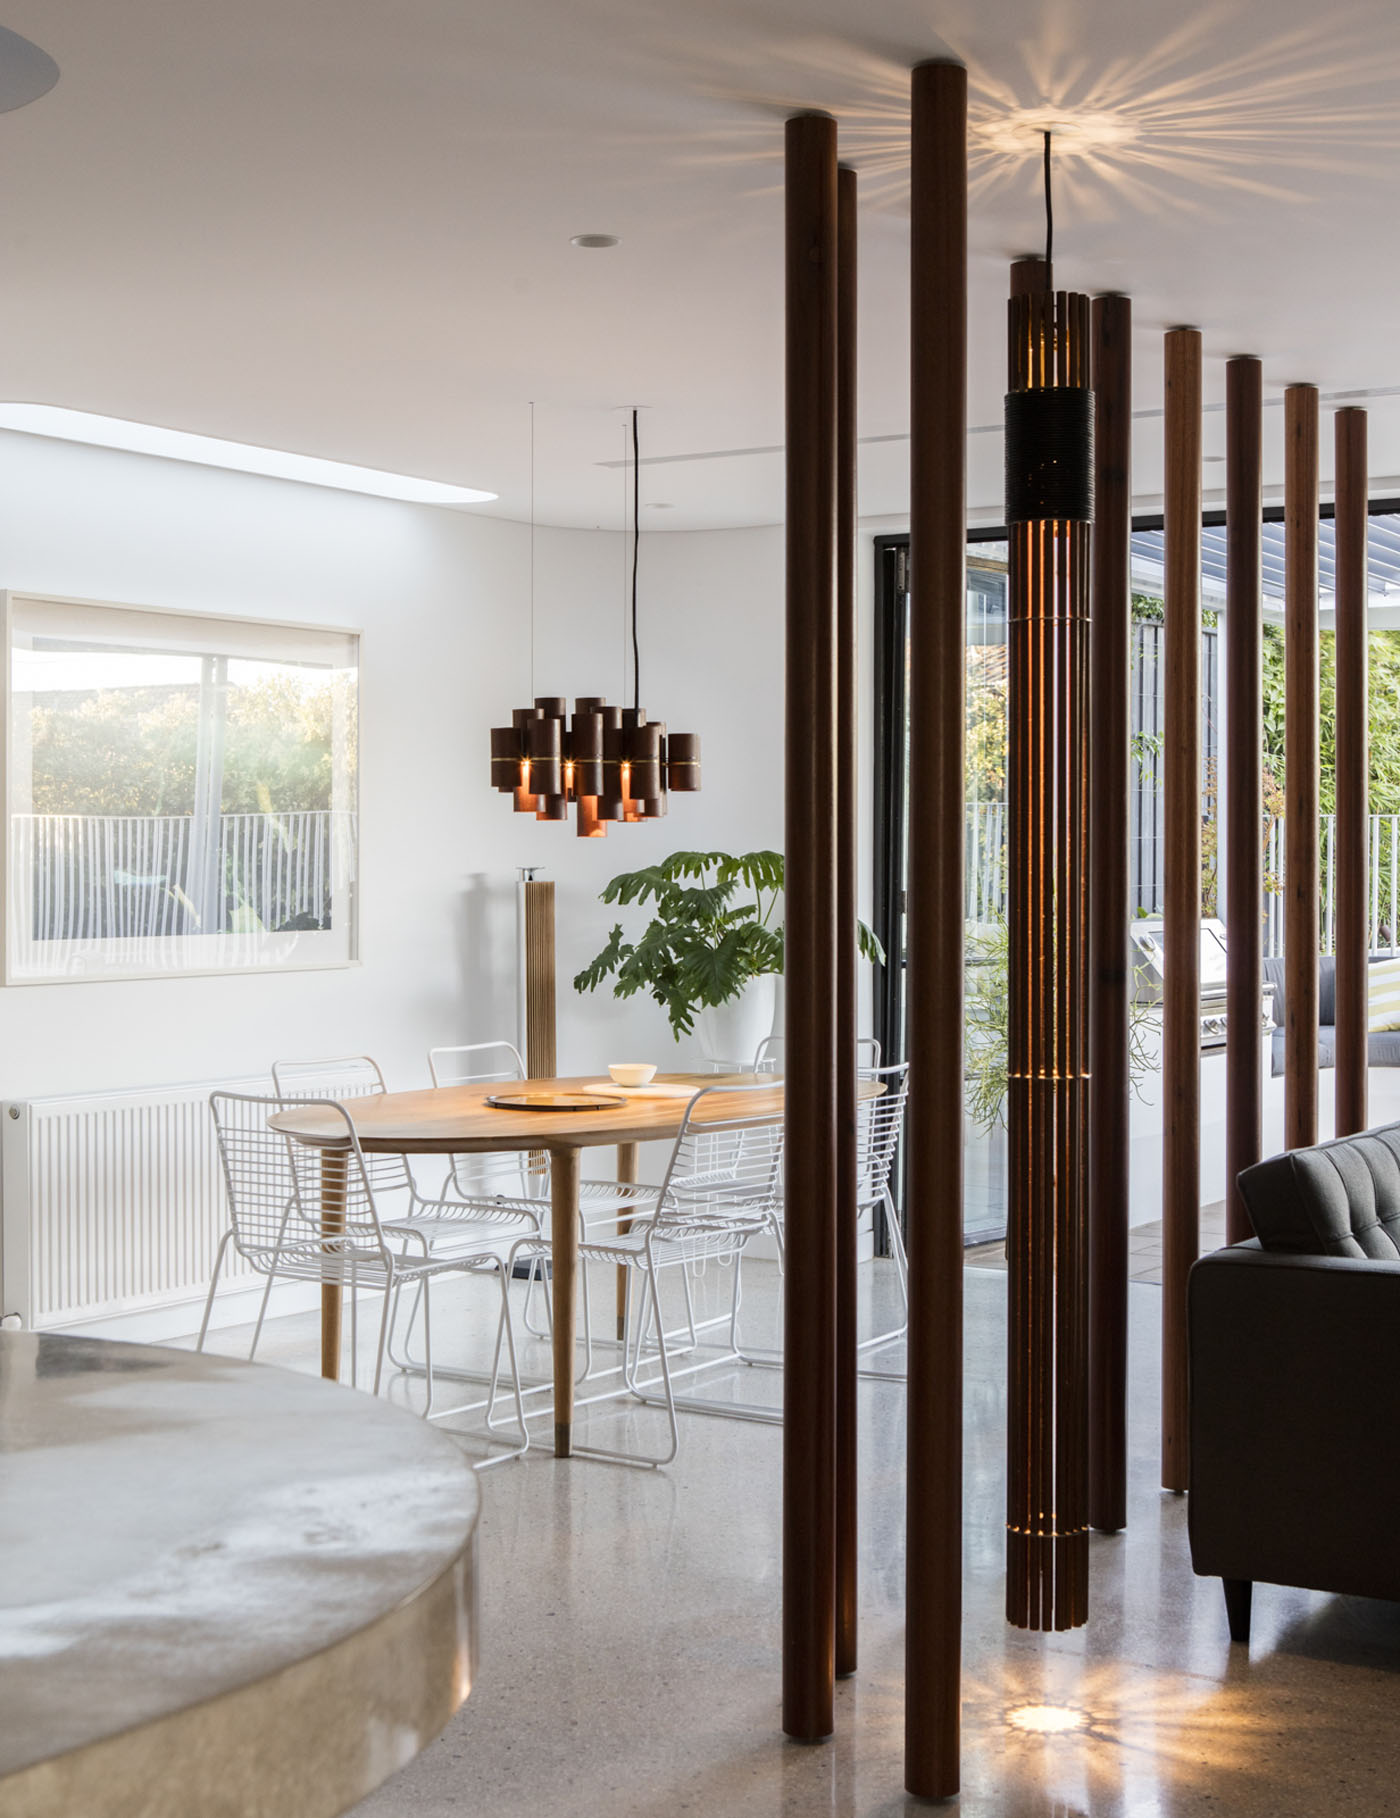 Conway Atkins House in Dover Heights by Sydney architect Sam Crawford Architect. Two different custom lights decorate the living spaces.